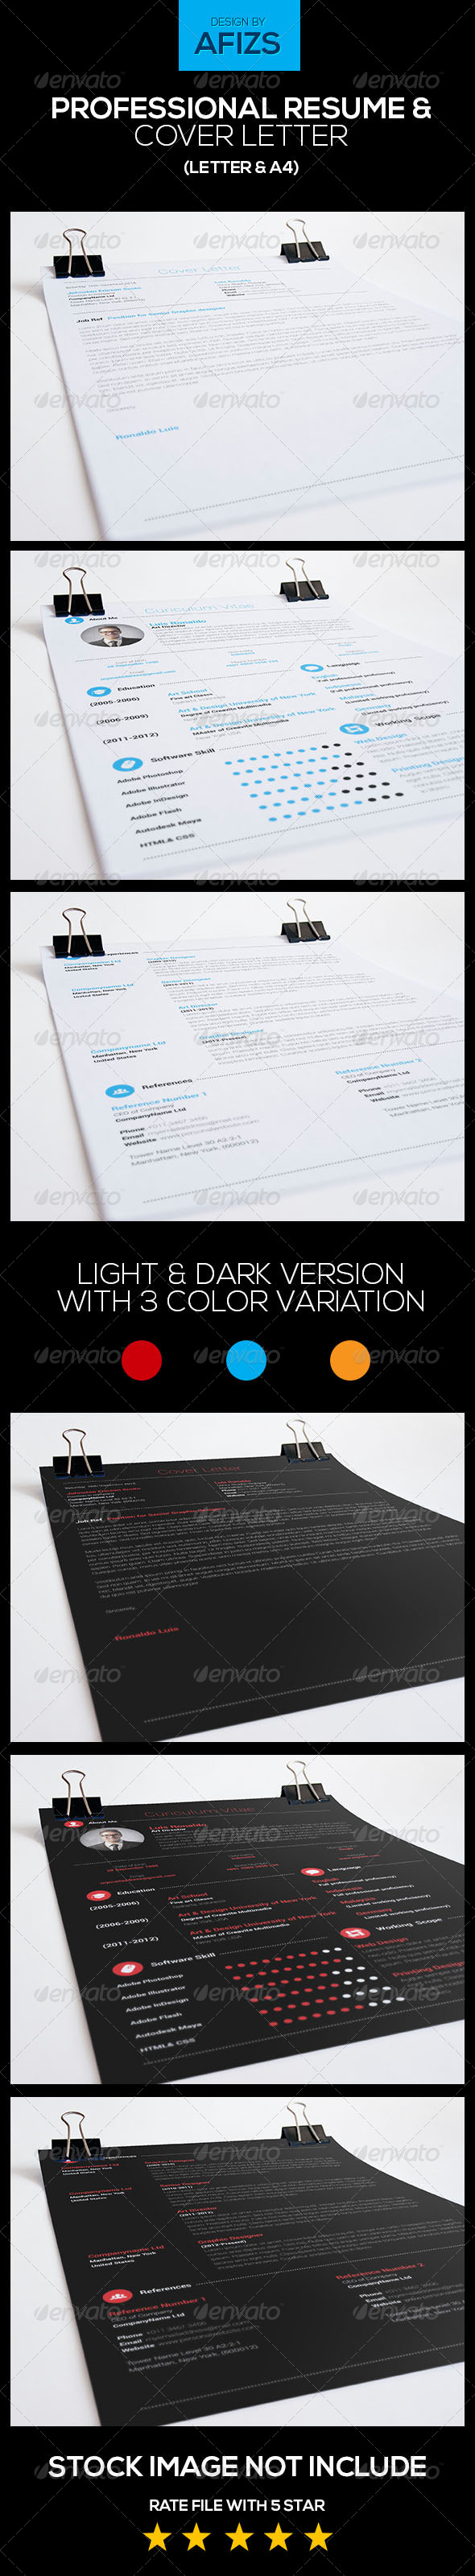 GraphicRiver Professional Resume & Cover Letter 5710145